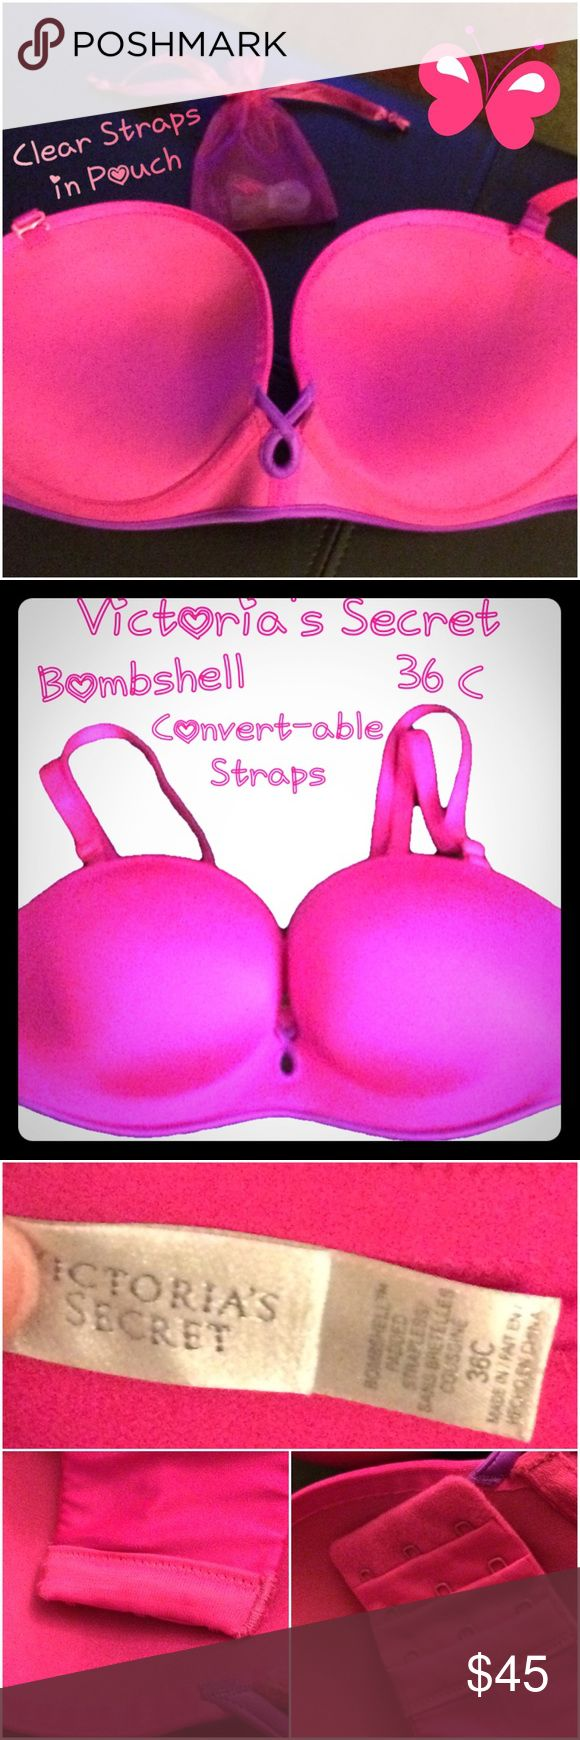 NWOT VS Bombshell/Padded Strappless Pink/Purple👙 NWOT Victorias Secret padded Bombshell strapless bra with convert-able straps in Pink/Purple. There are 2 sets of straps the pink ones which are attached to the bra in pics, and also comes with clear straps in the pink mesh pouch. Can wear this as strapless, one shoulder, racerback, halter style or with both straps like a regular bra. Size is 36 C. Victoria's Secret Intimates & Sleepwear Bras